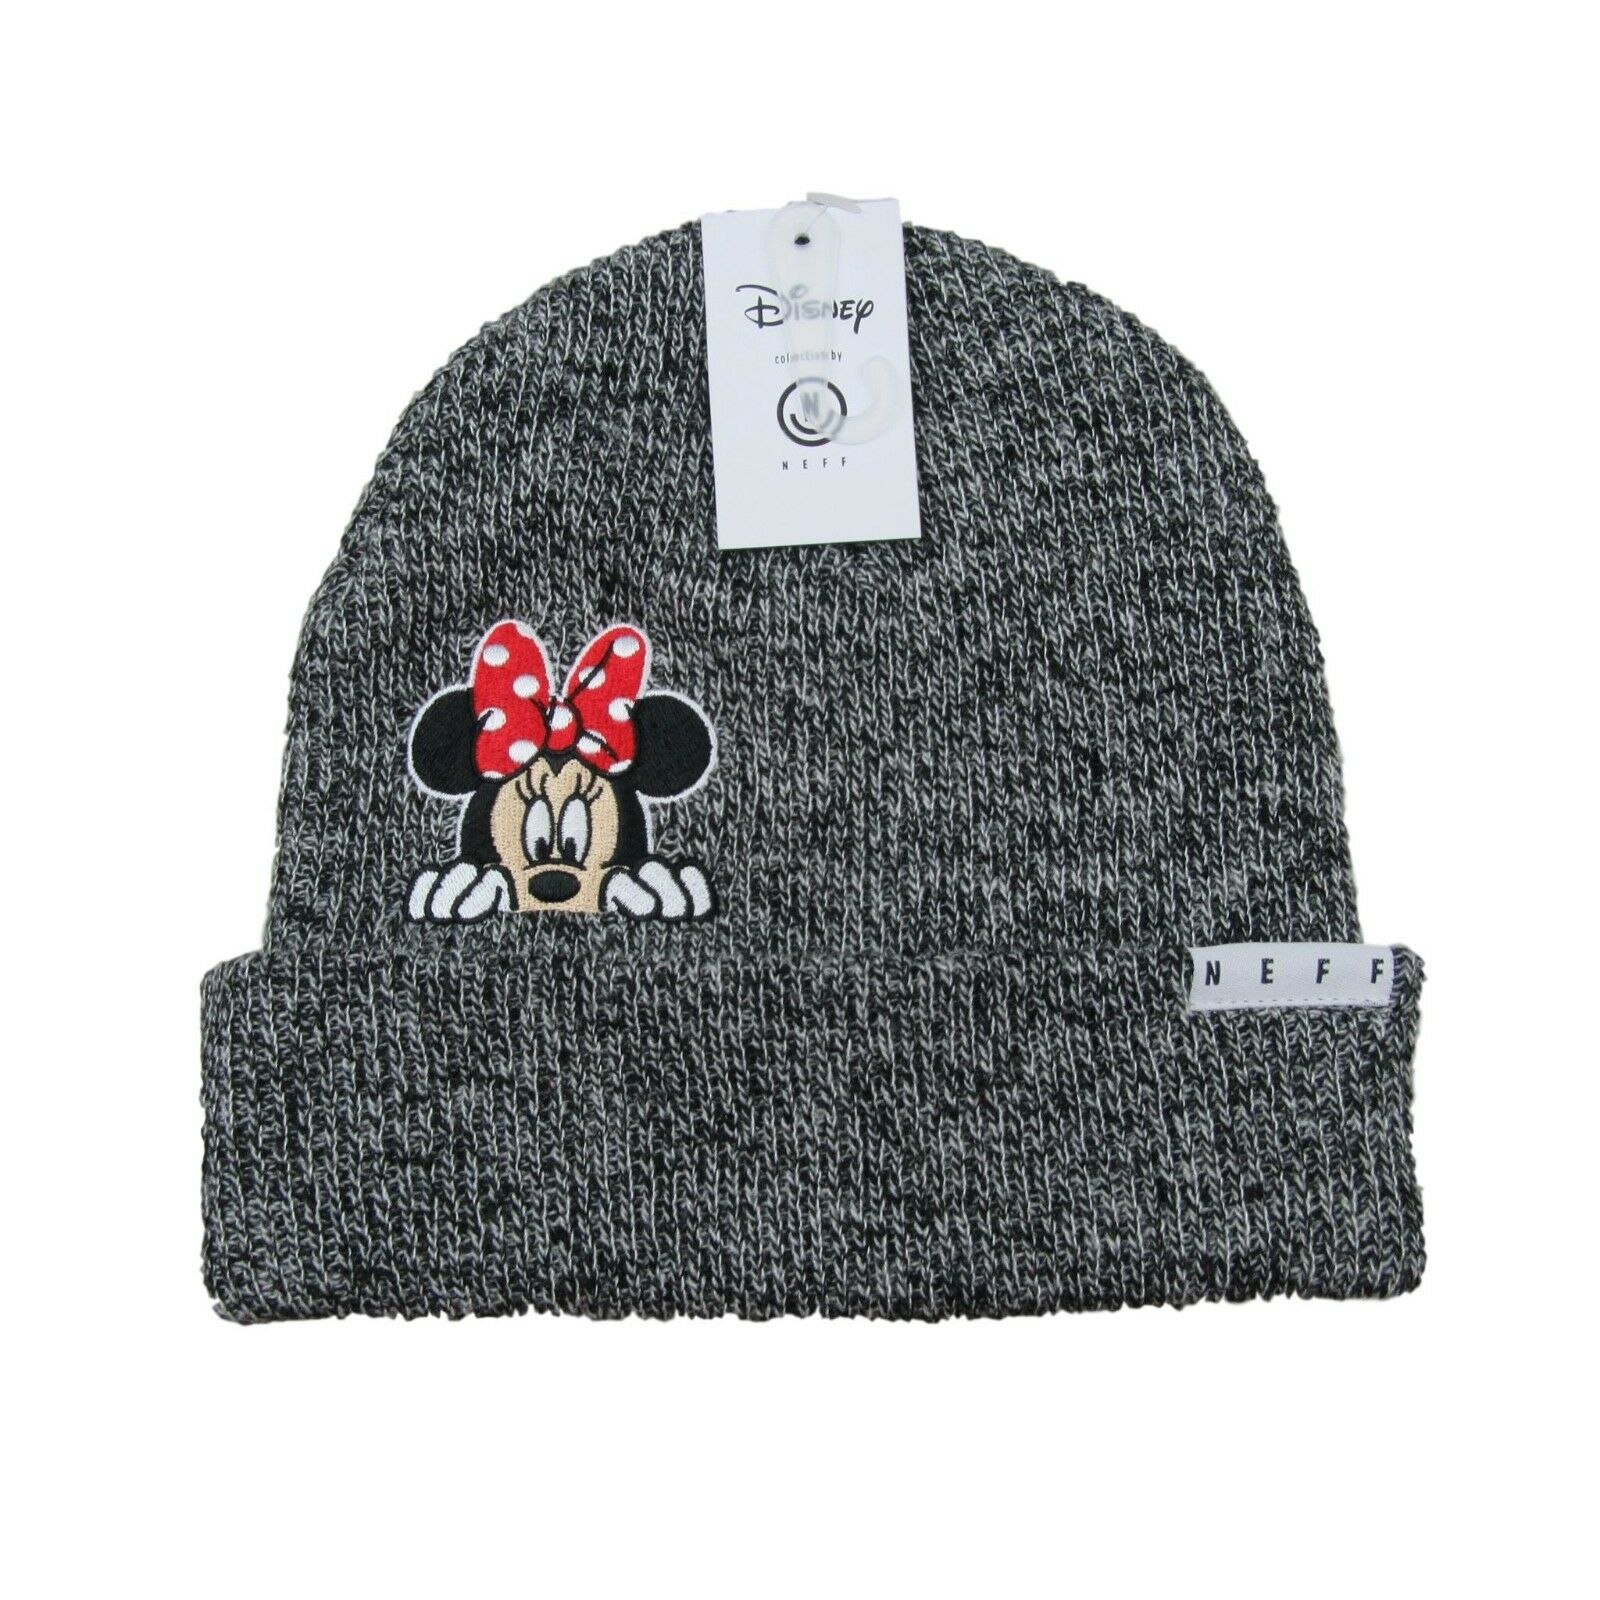 30aa90fe987 Disney Collection Neff Minnie Mouse Grey Beanie Cap Unisex One Size Fit